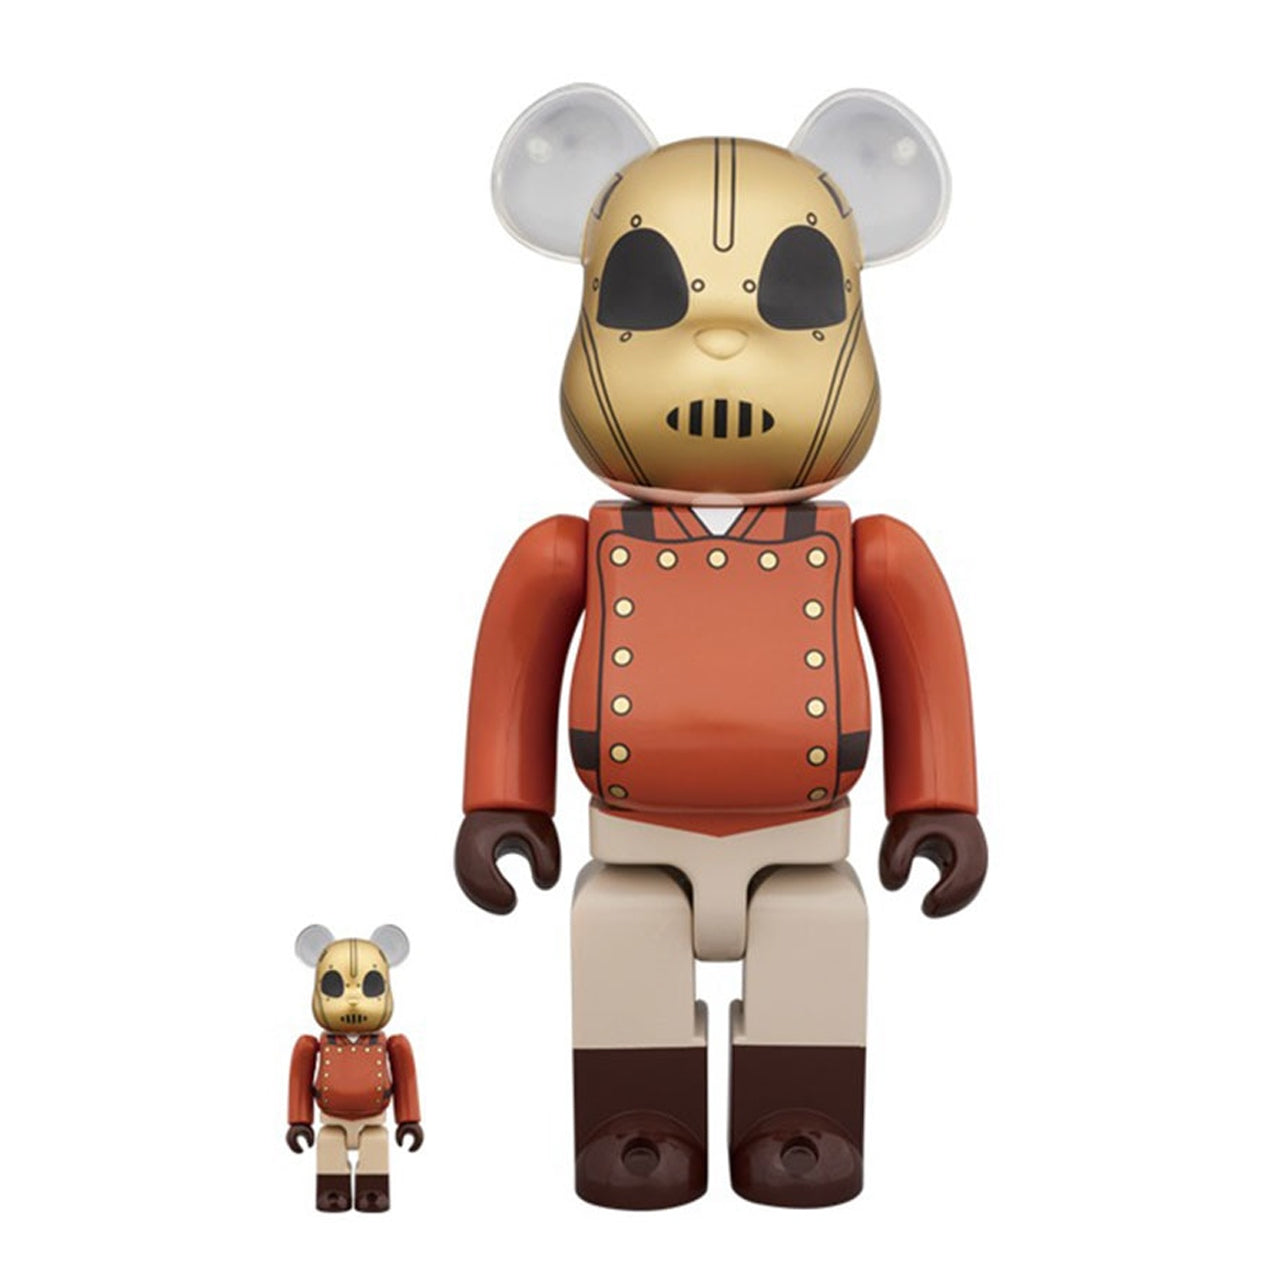 The Rocketeer 100% & 400% BEARBRICK SET by Medicom Toy